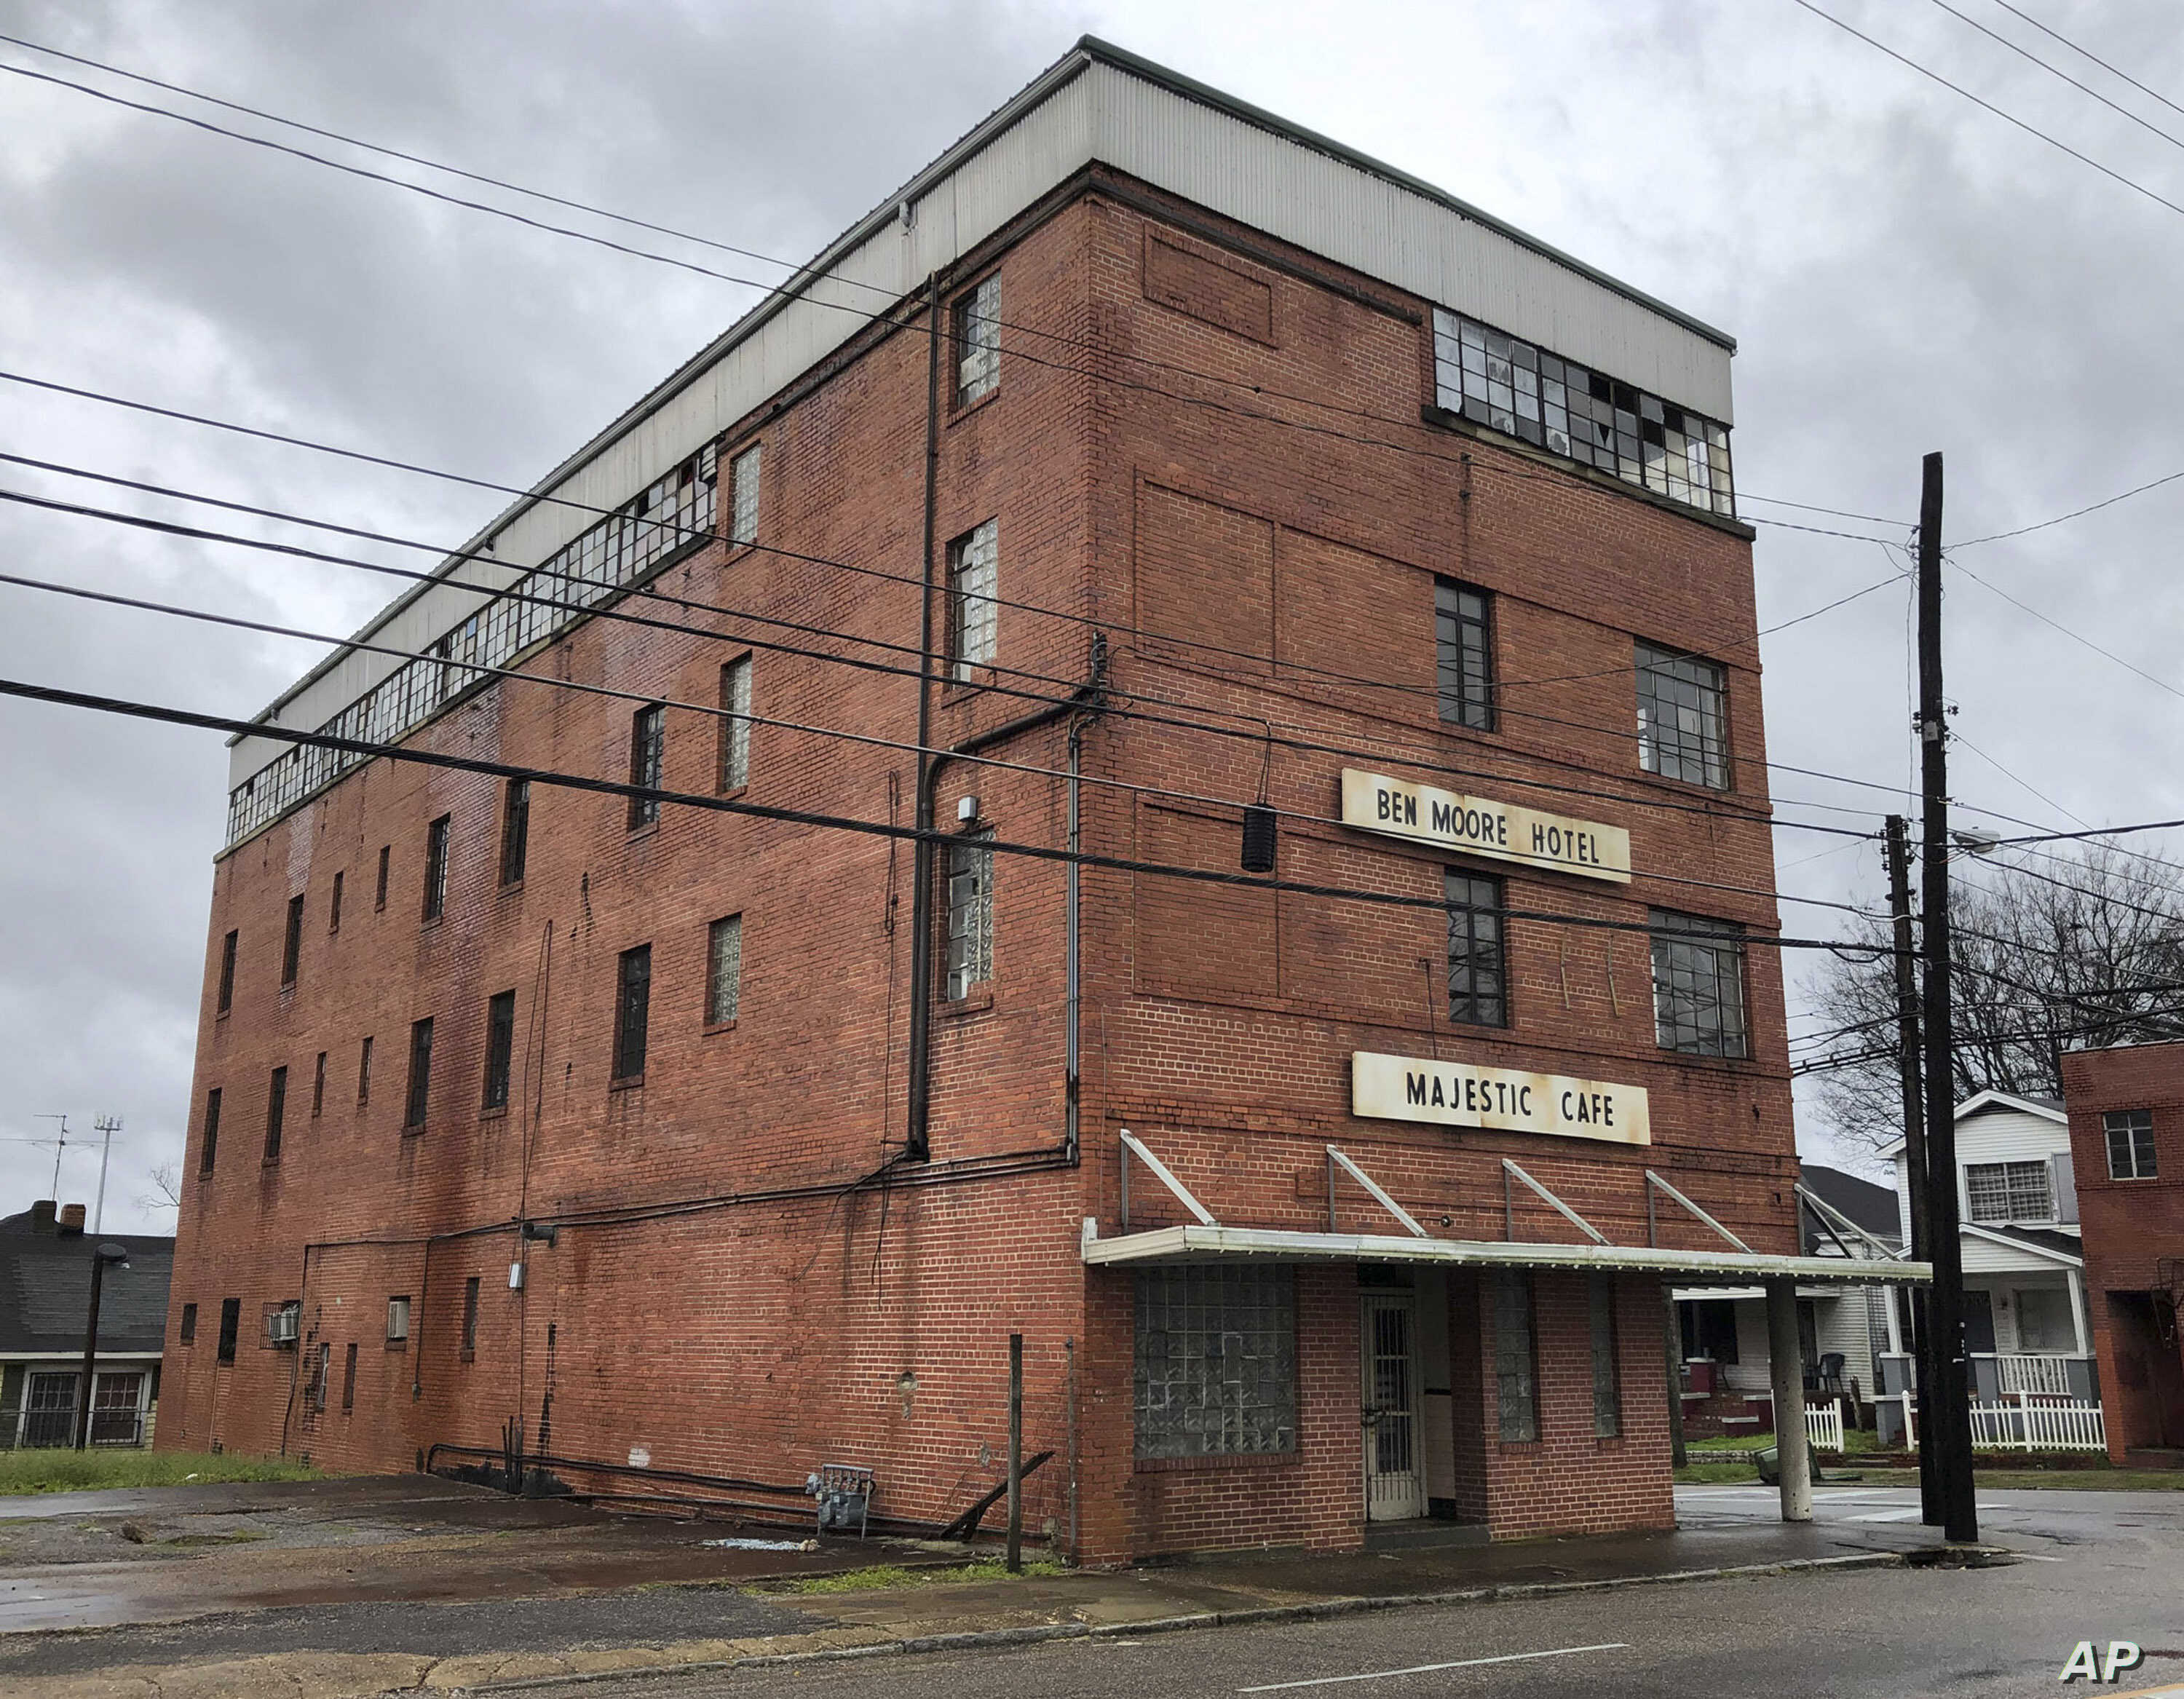 """The old Ben Moore Hotel, once mentioned in the """"Green Book"""" for black travelers, in Montgomery, Ala., Feb. 12, 2019. The movie """"Green Book"""" has spurred interest in the real guidebook that helped black travelers navigate segregated America. The hotel,..."""